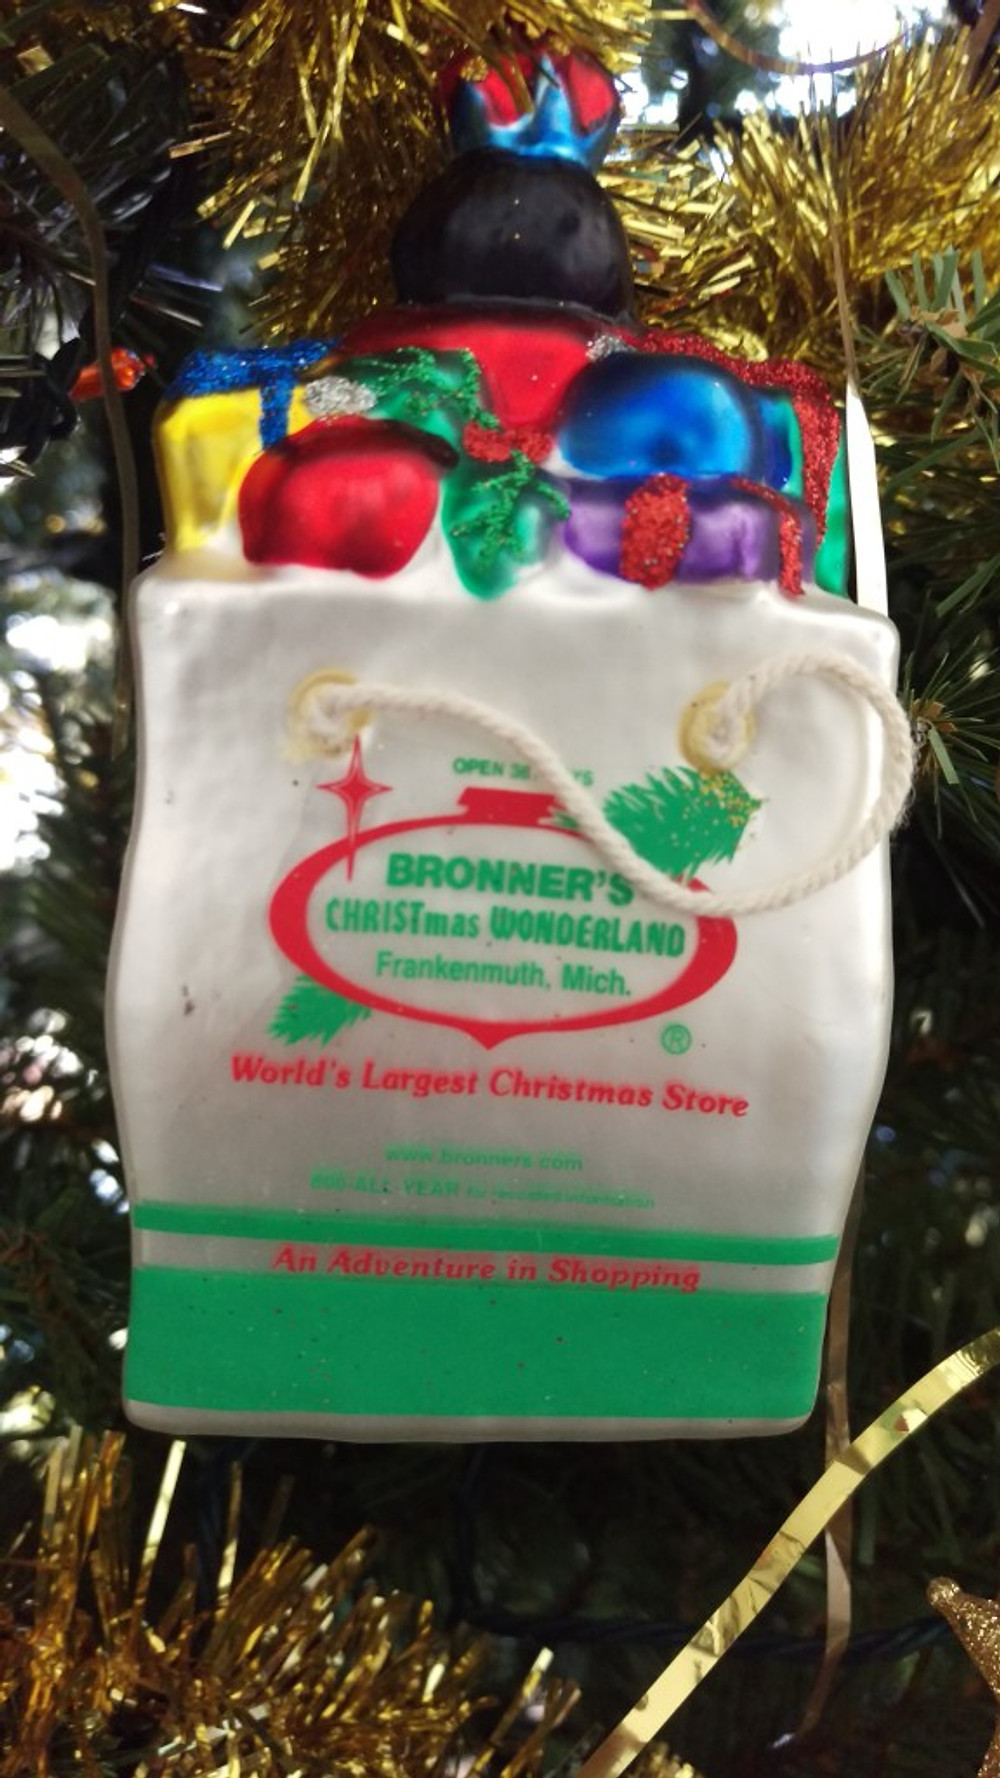 An ornament shaped like a shopping bag and filled with ornaments. It's a replica of the bags they use at Bronner's.